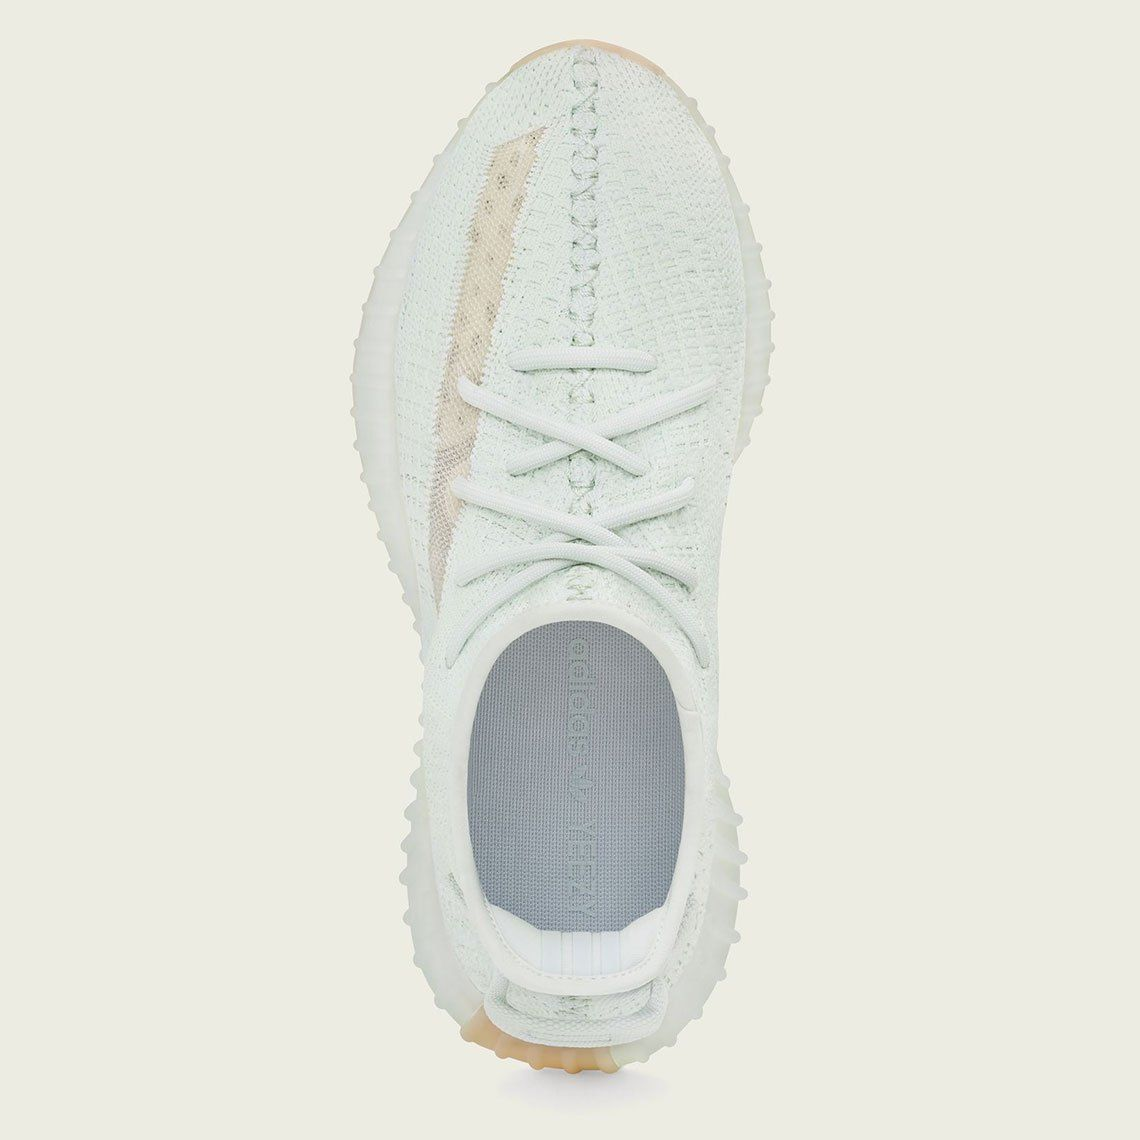 e10f136727aa4 Official Release Info For The adidas Yeezy Boost 350 v2 Hyperspace ...